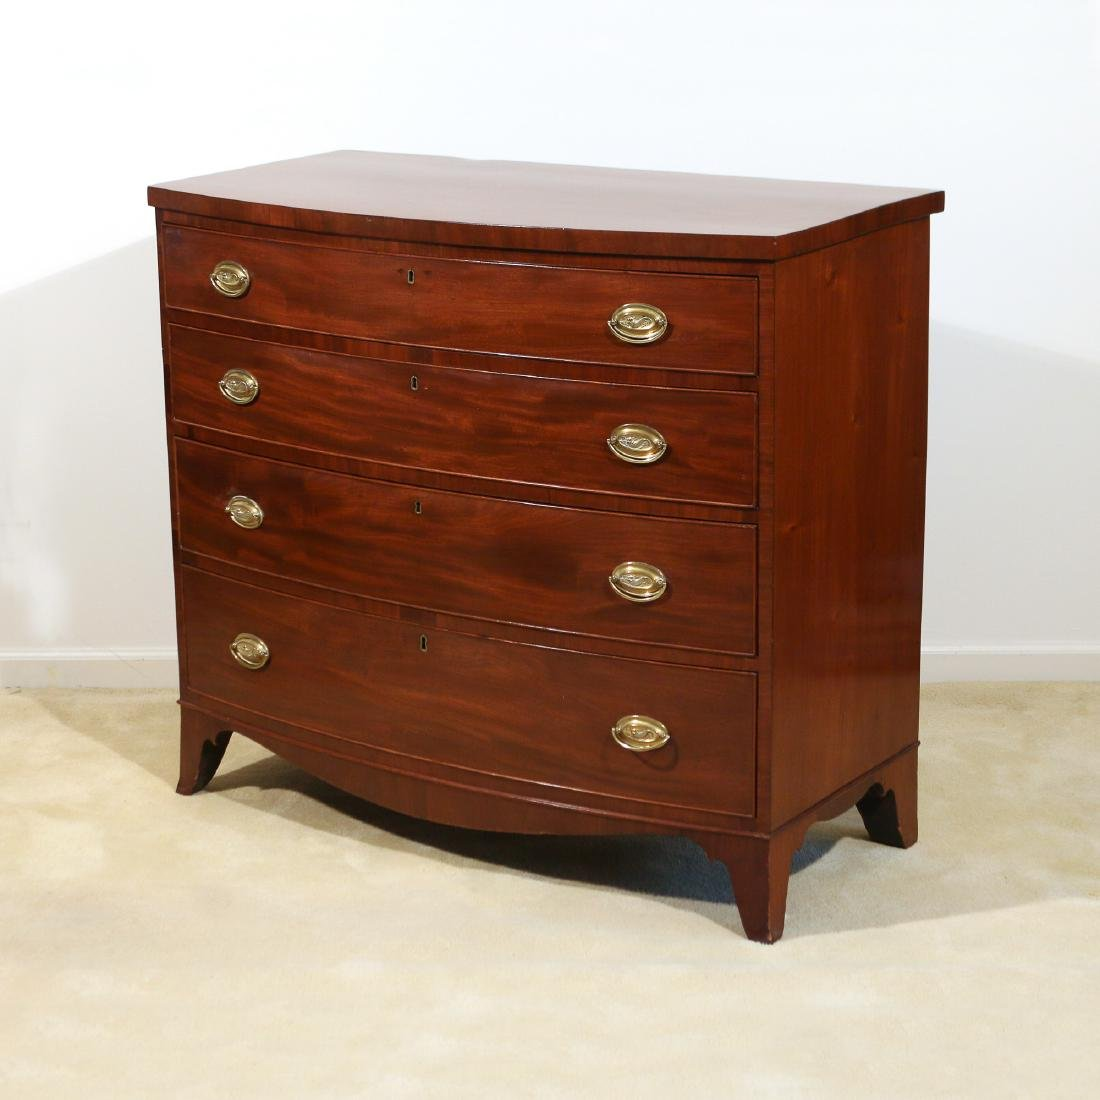 AMERICAN MAHOGANY BOW-FRONT CHEST